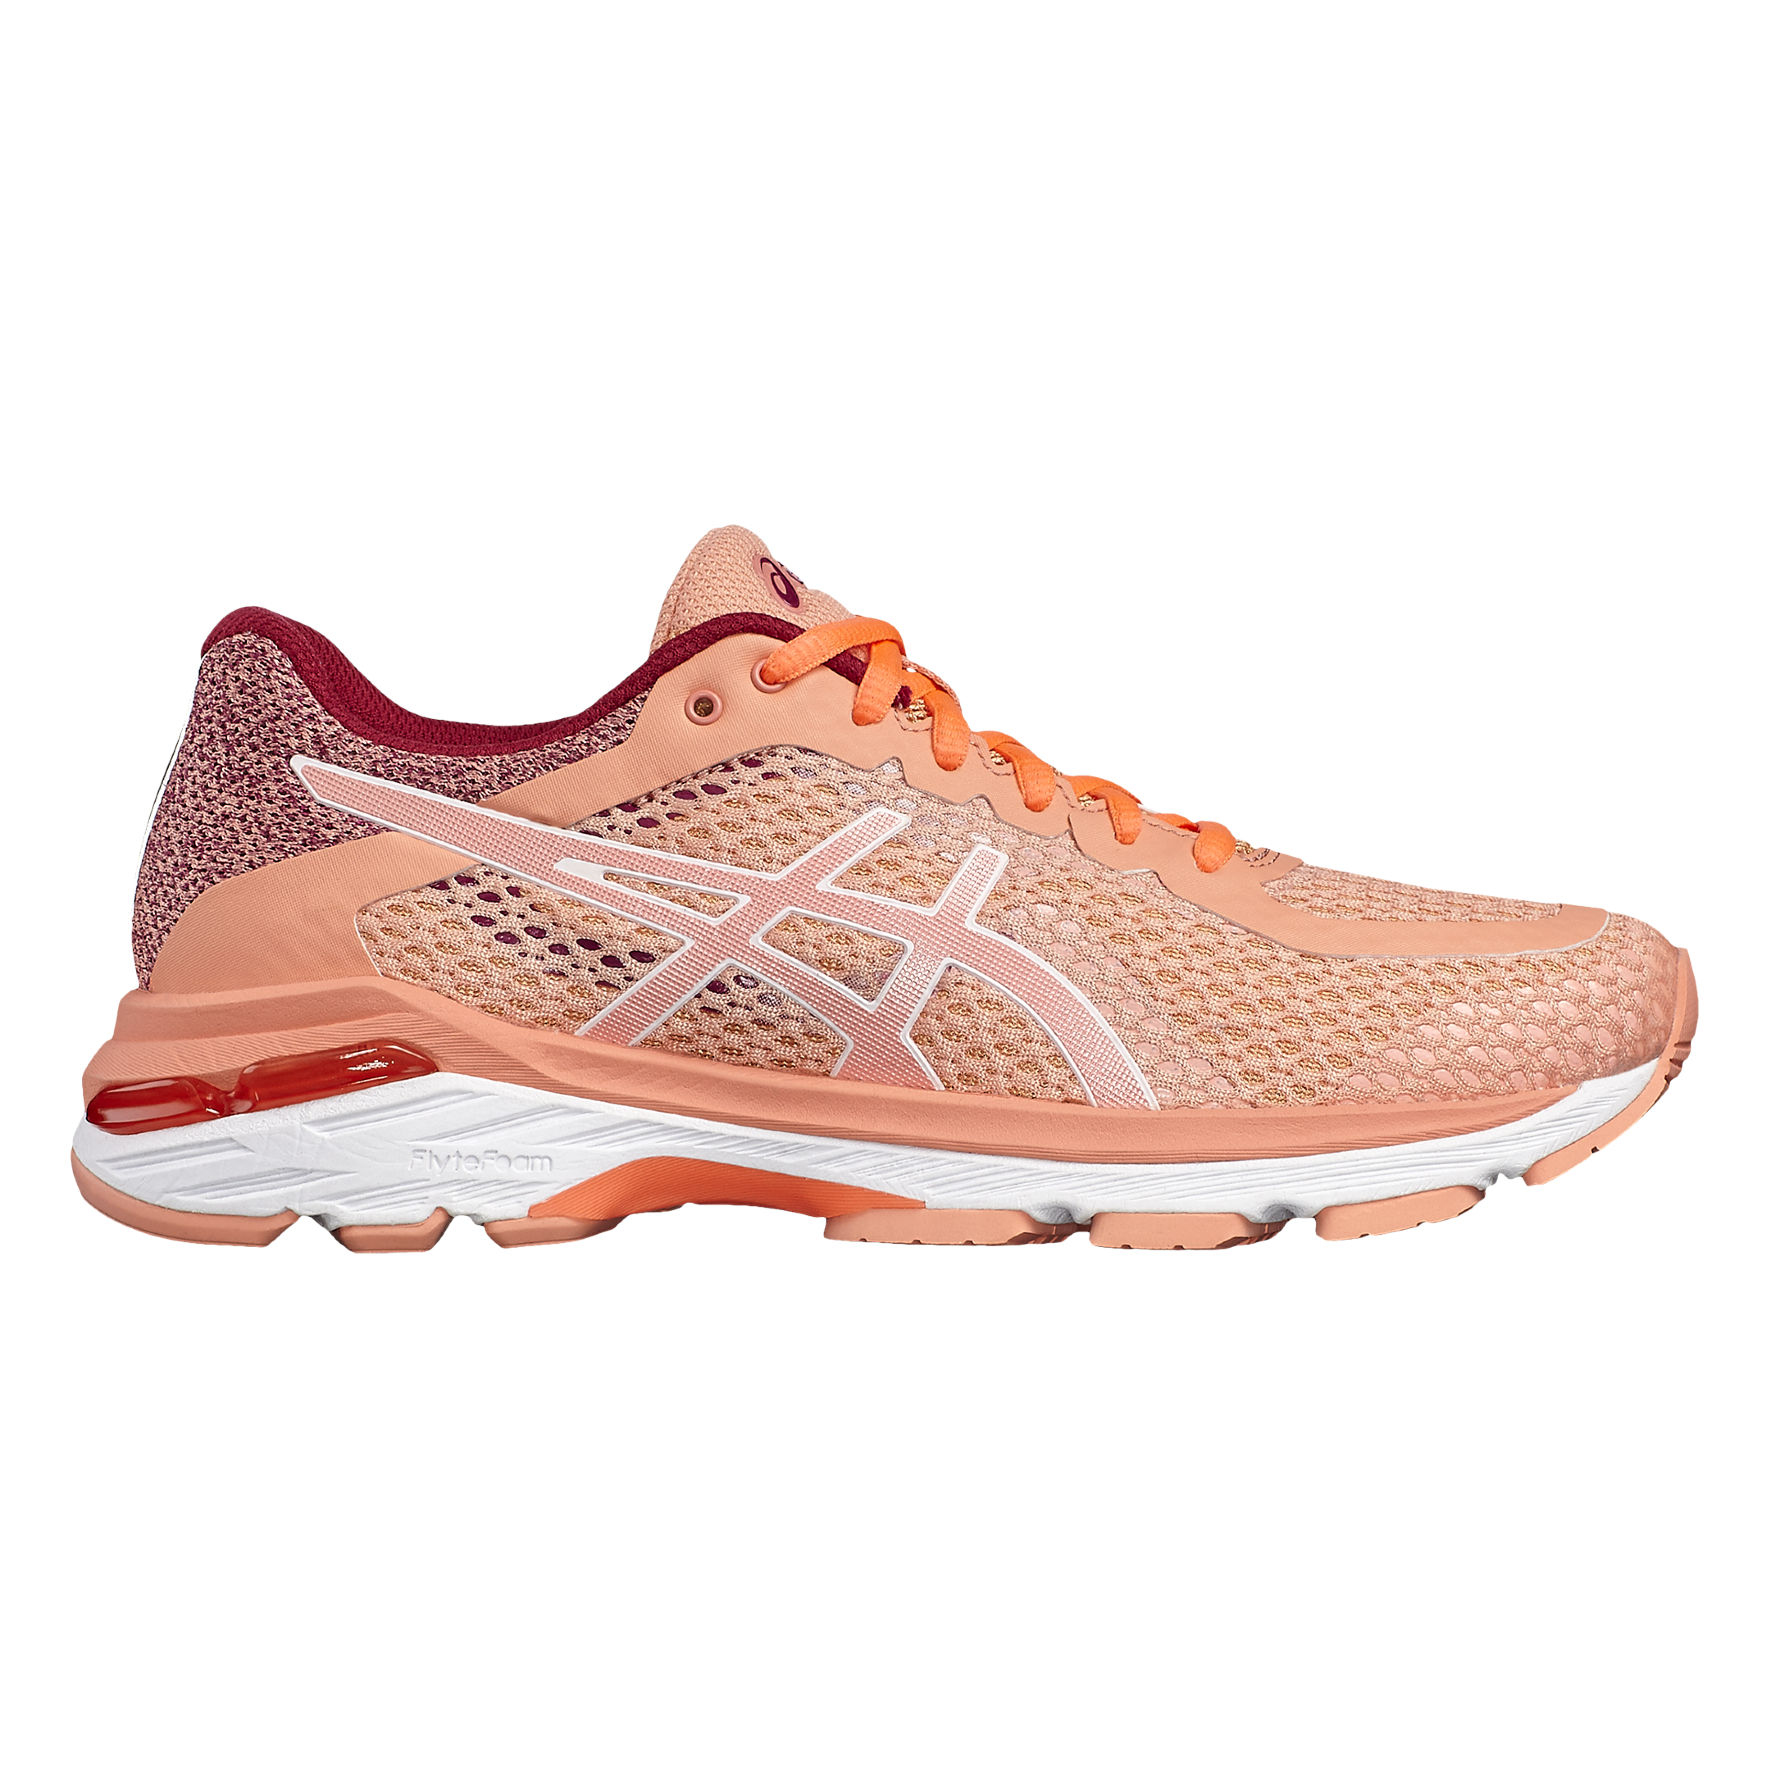 Asics Lady Gel Pursue 4 in Peach